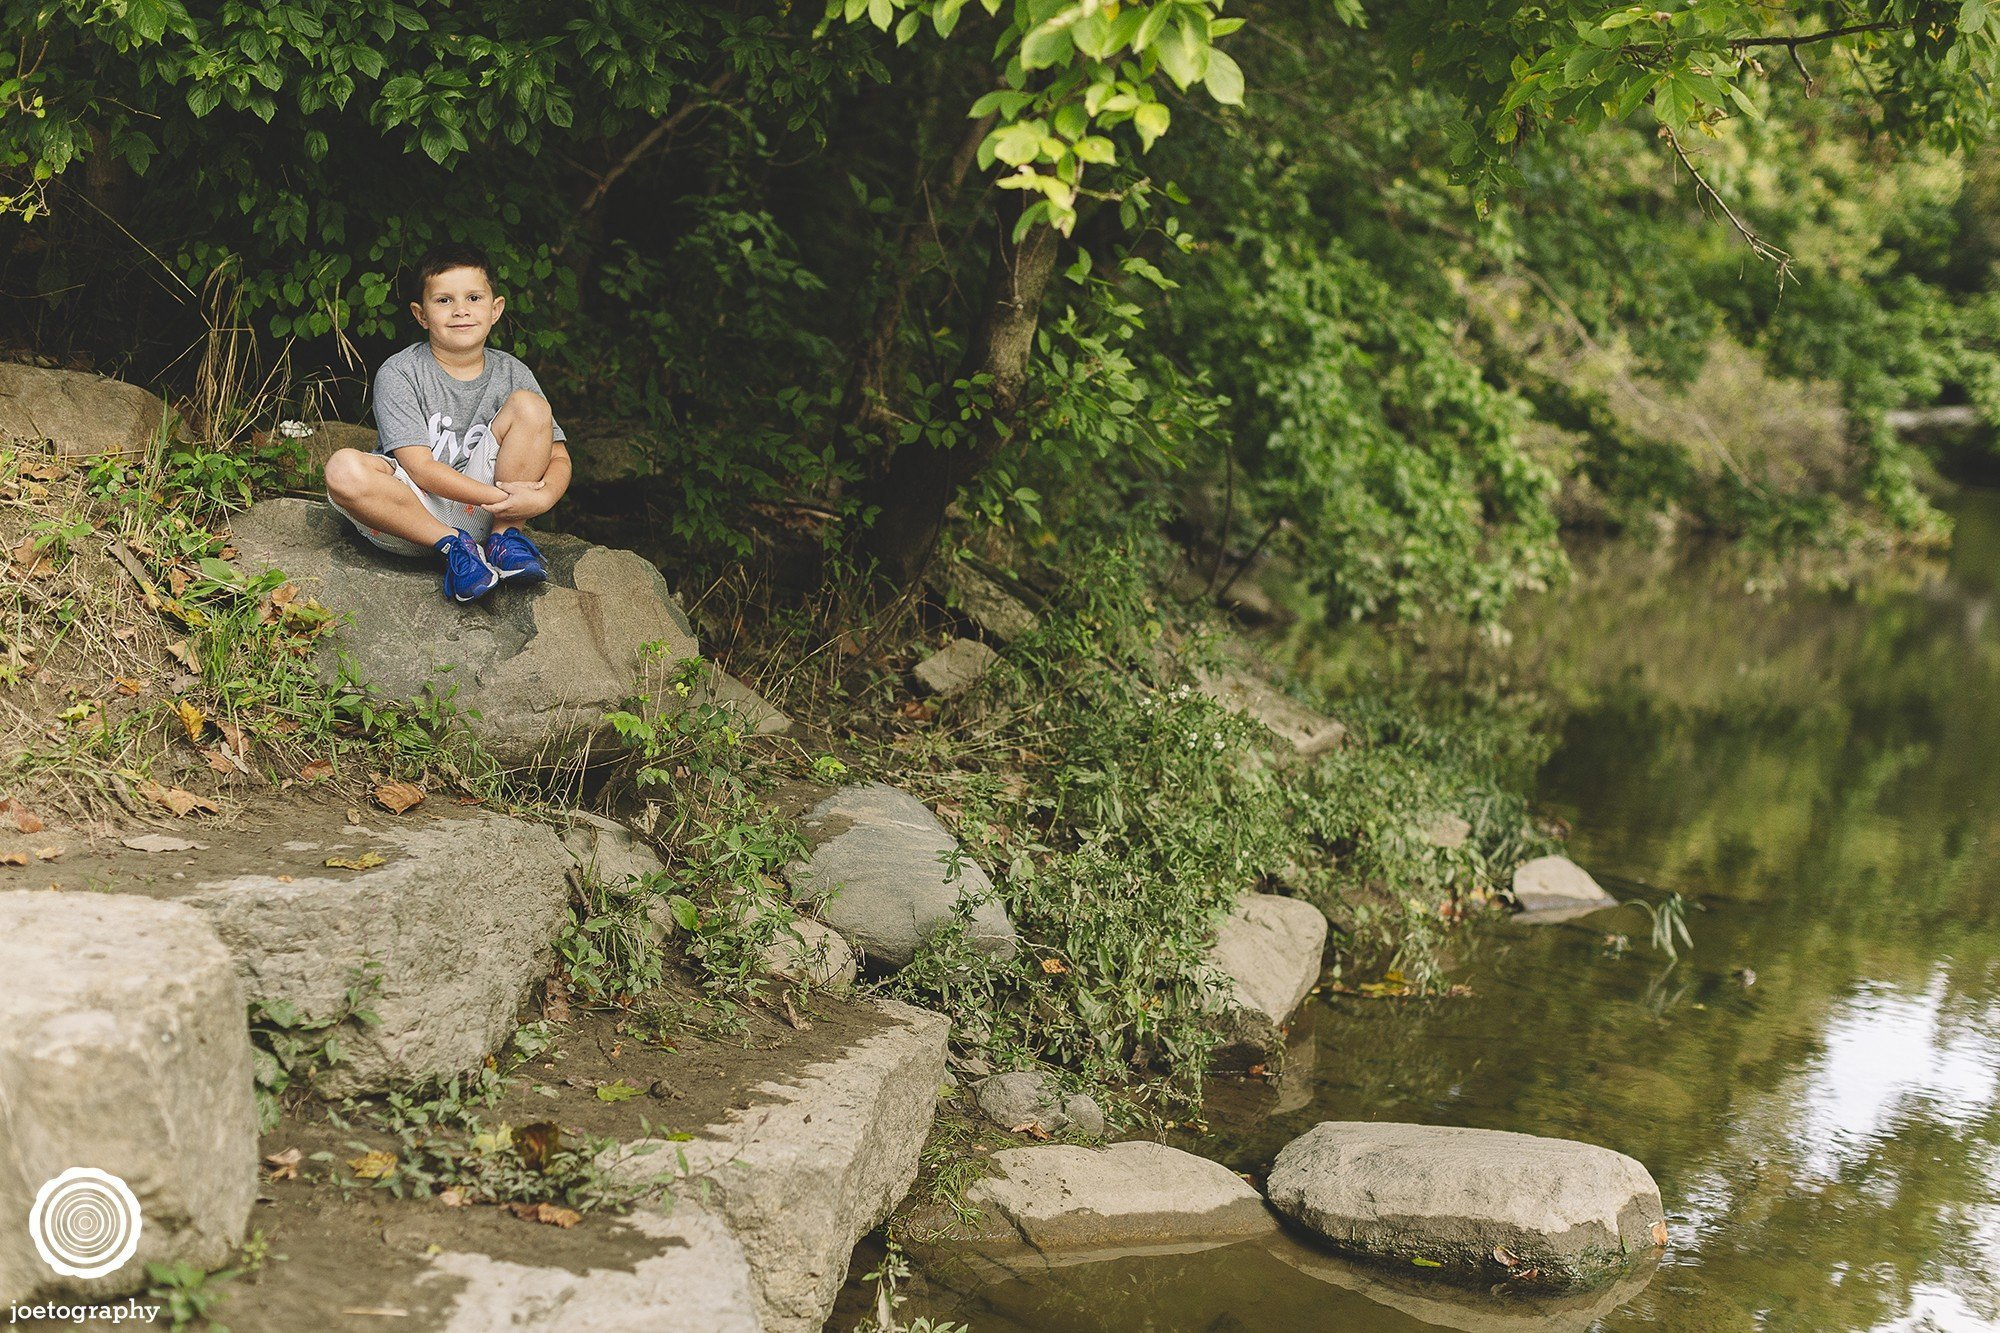 Riffle Child Portrait Session | Zionsville, Indiana - 9